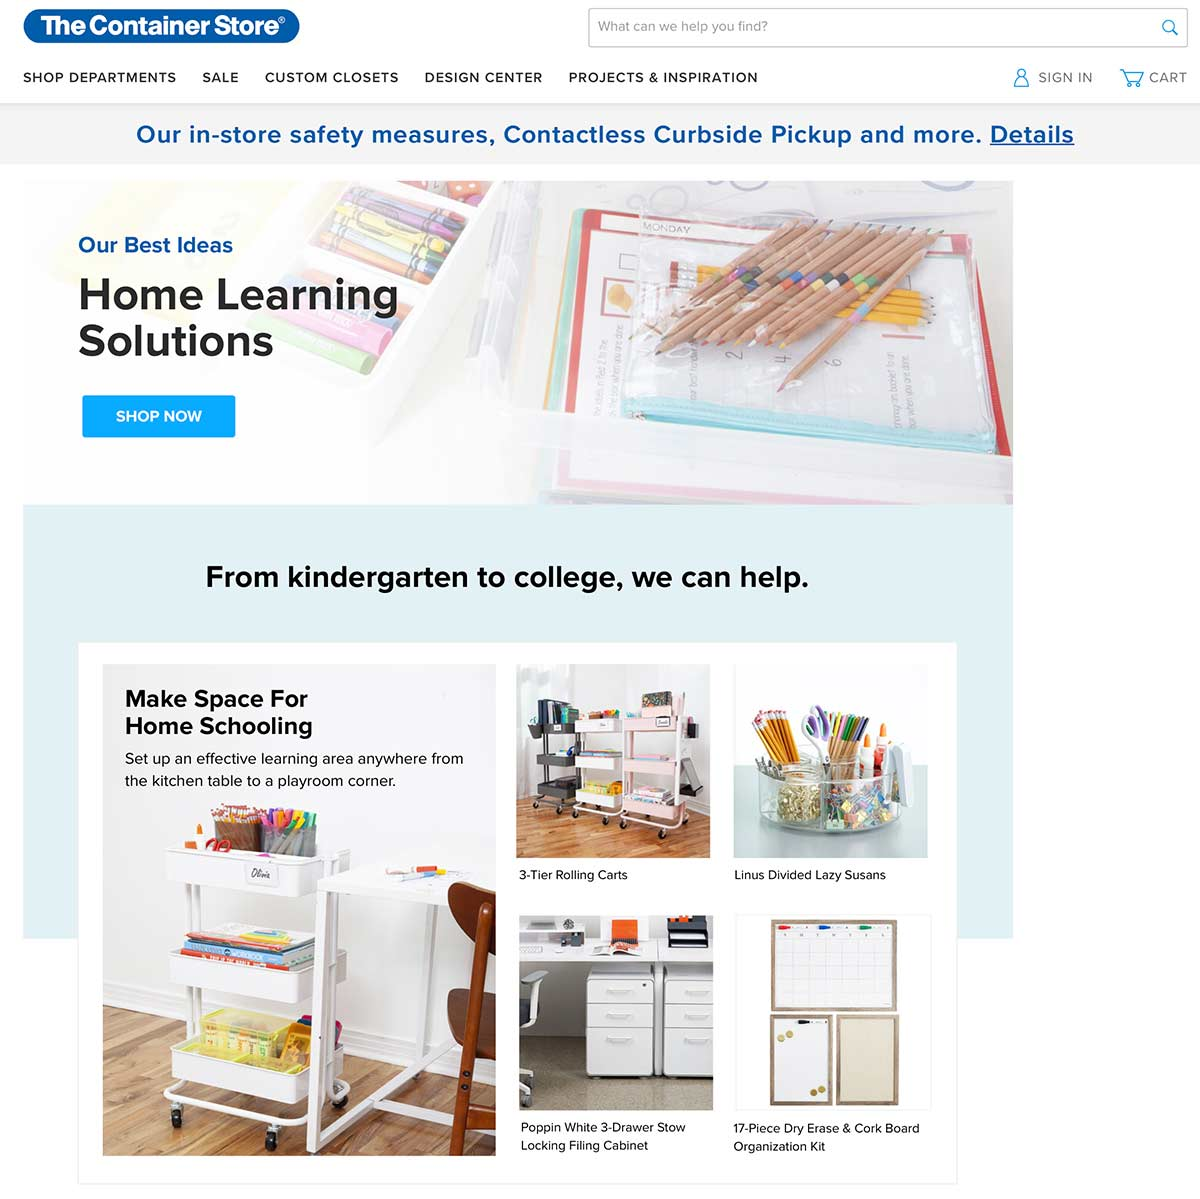 The Container Store landing page for home schooling